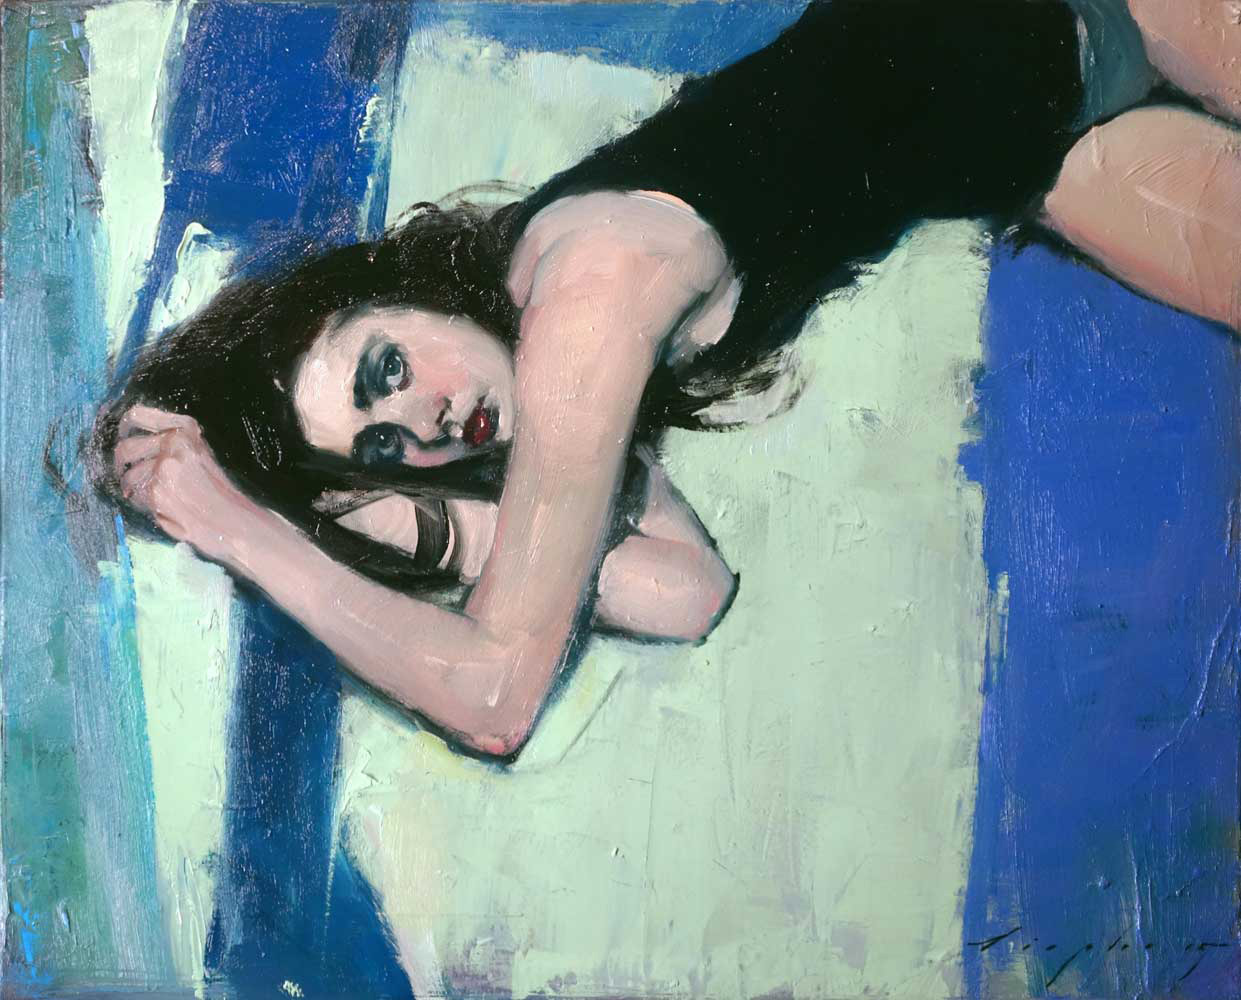 Blue Angel I, 2015 by Malcolm T. Liepke | Yellowtrace